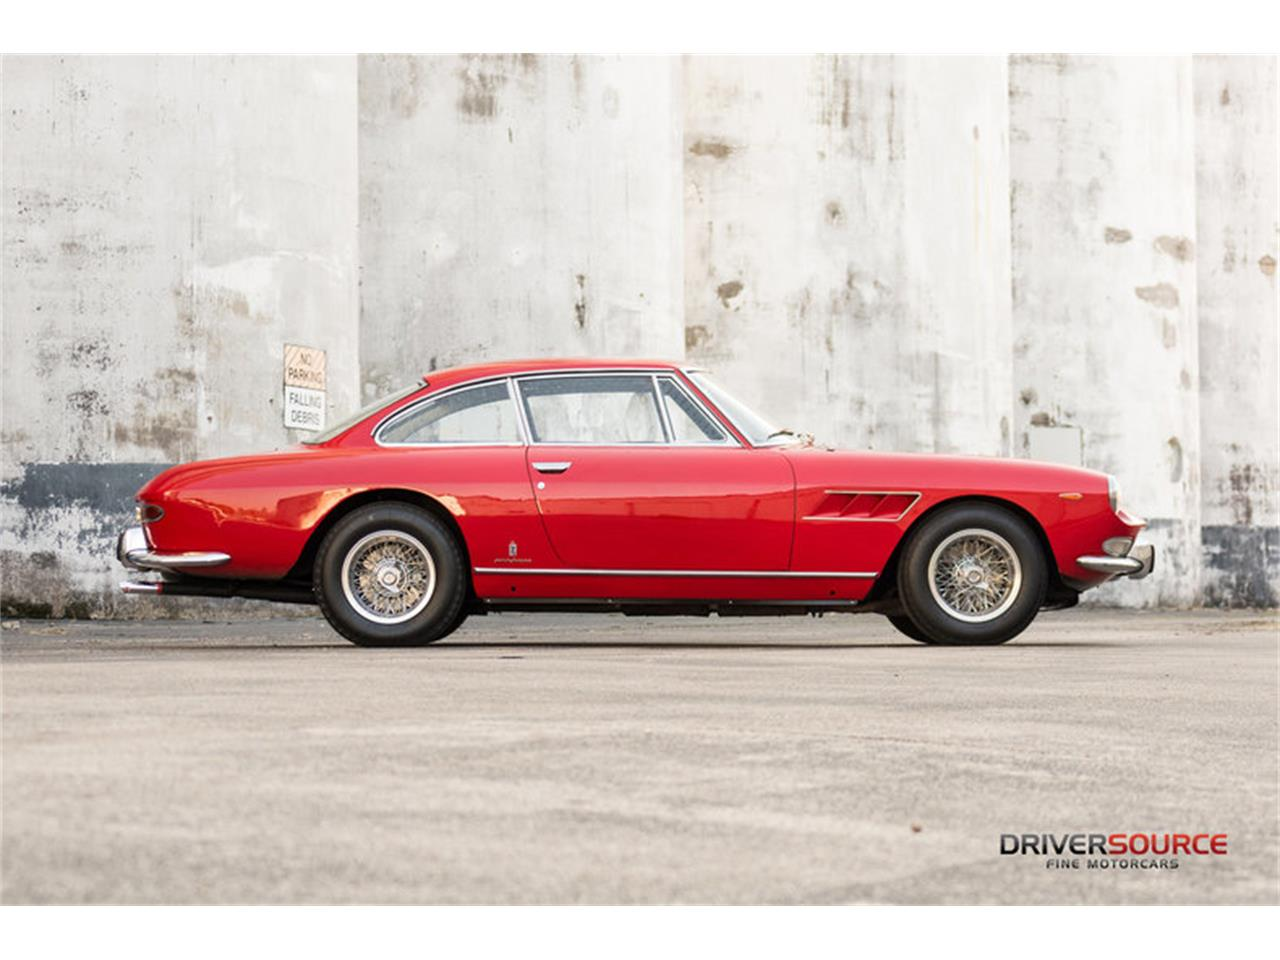 Large Picture of Classic '66 Ferrari 330 GT located in Houston Texas Offered by Driversource - MH2U